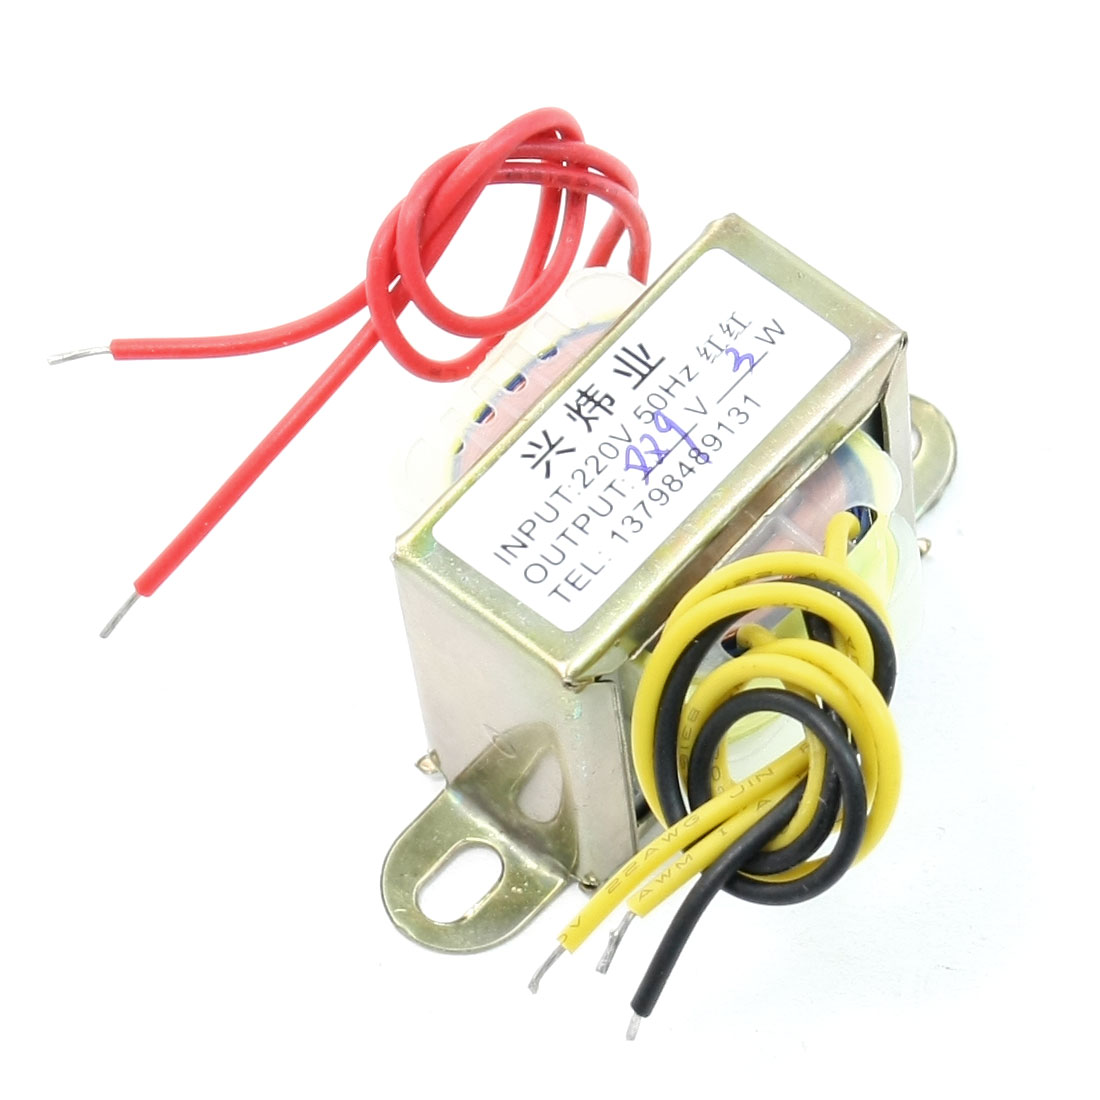 220V 50Hz Input to 9V 3W Output EI Core Double Phase Power Transformer